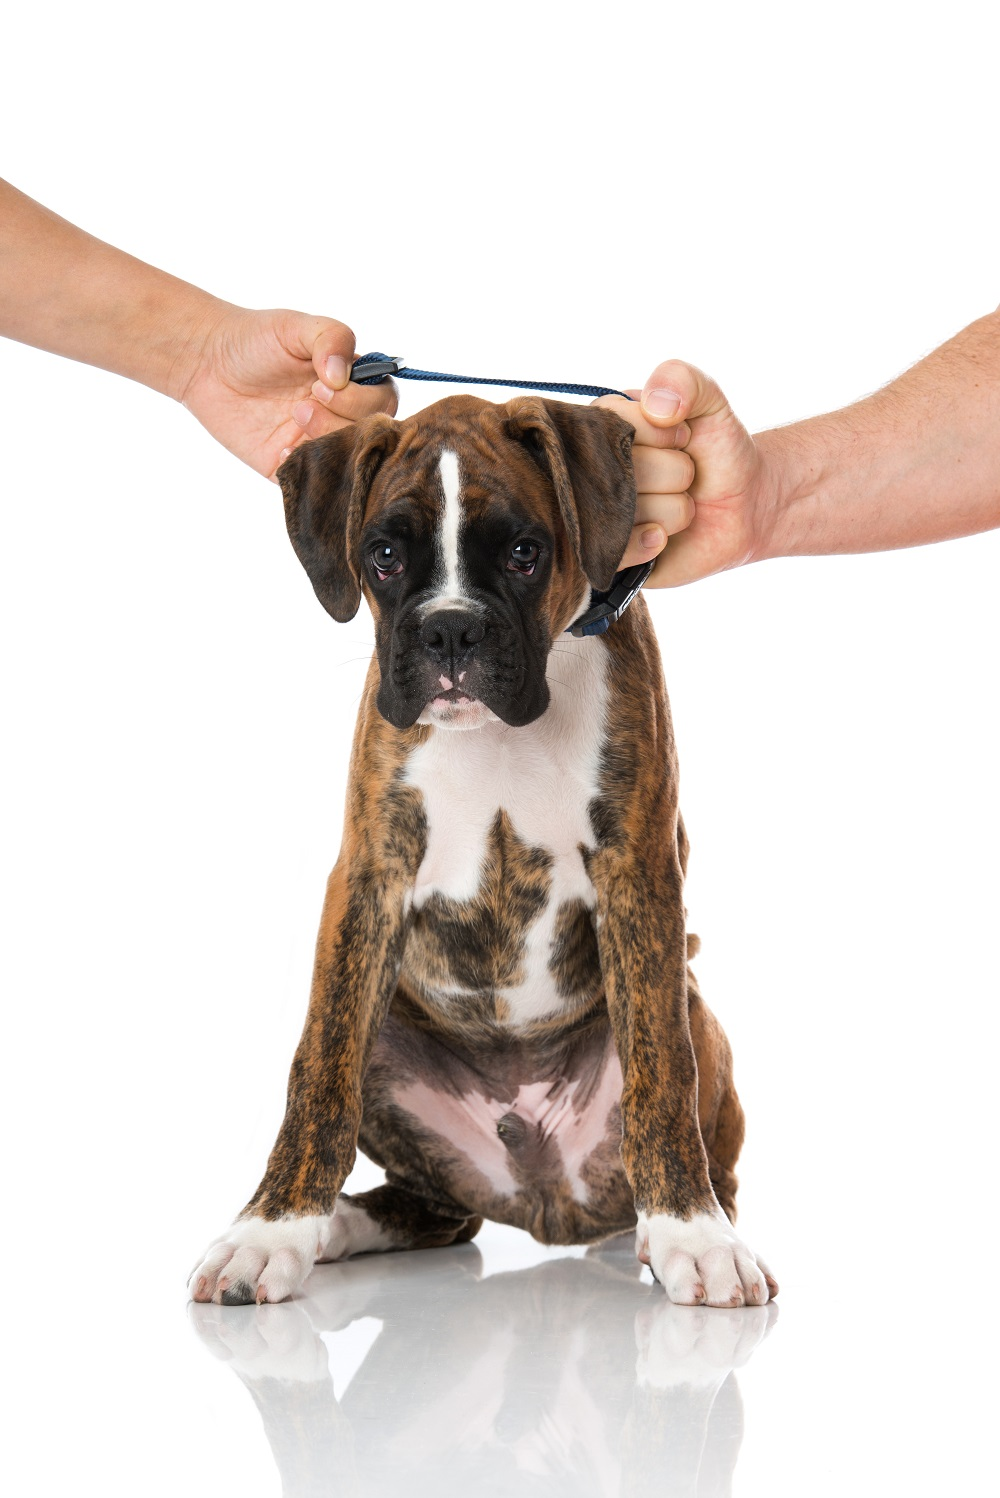 Who Gets the Pets in a Divorce in Arizona?